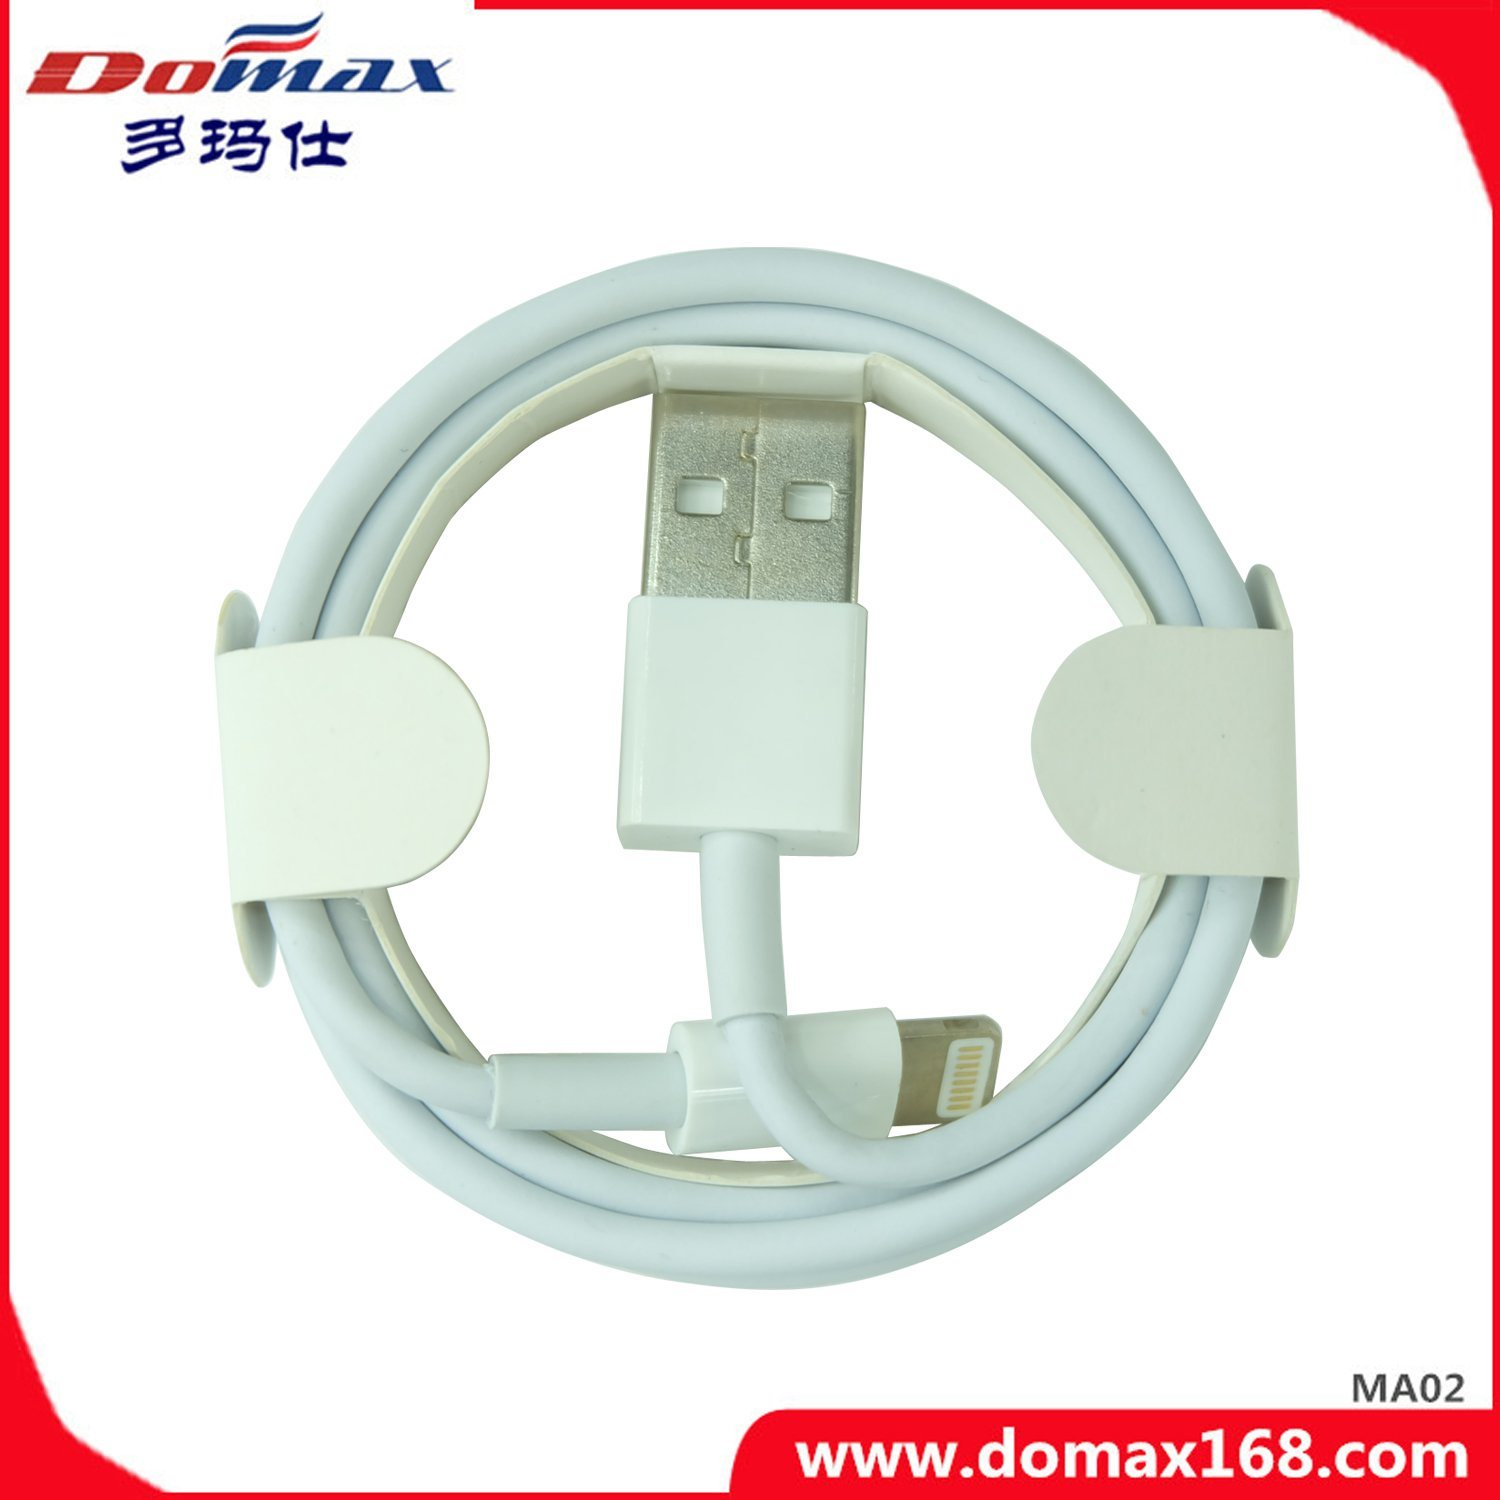 Mobile Phone Accessories USB Cable Lightning Data USB Cable